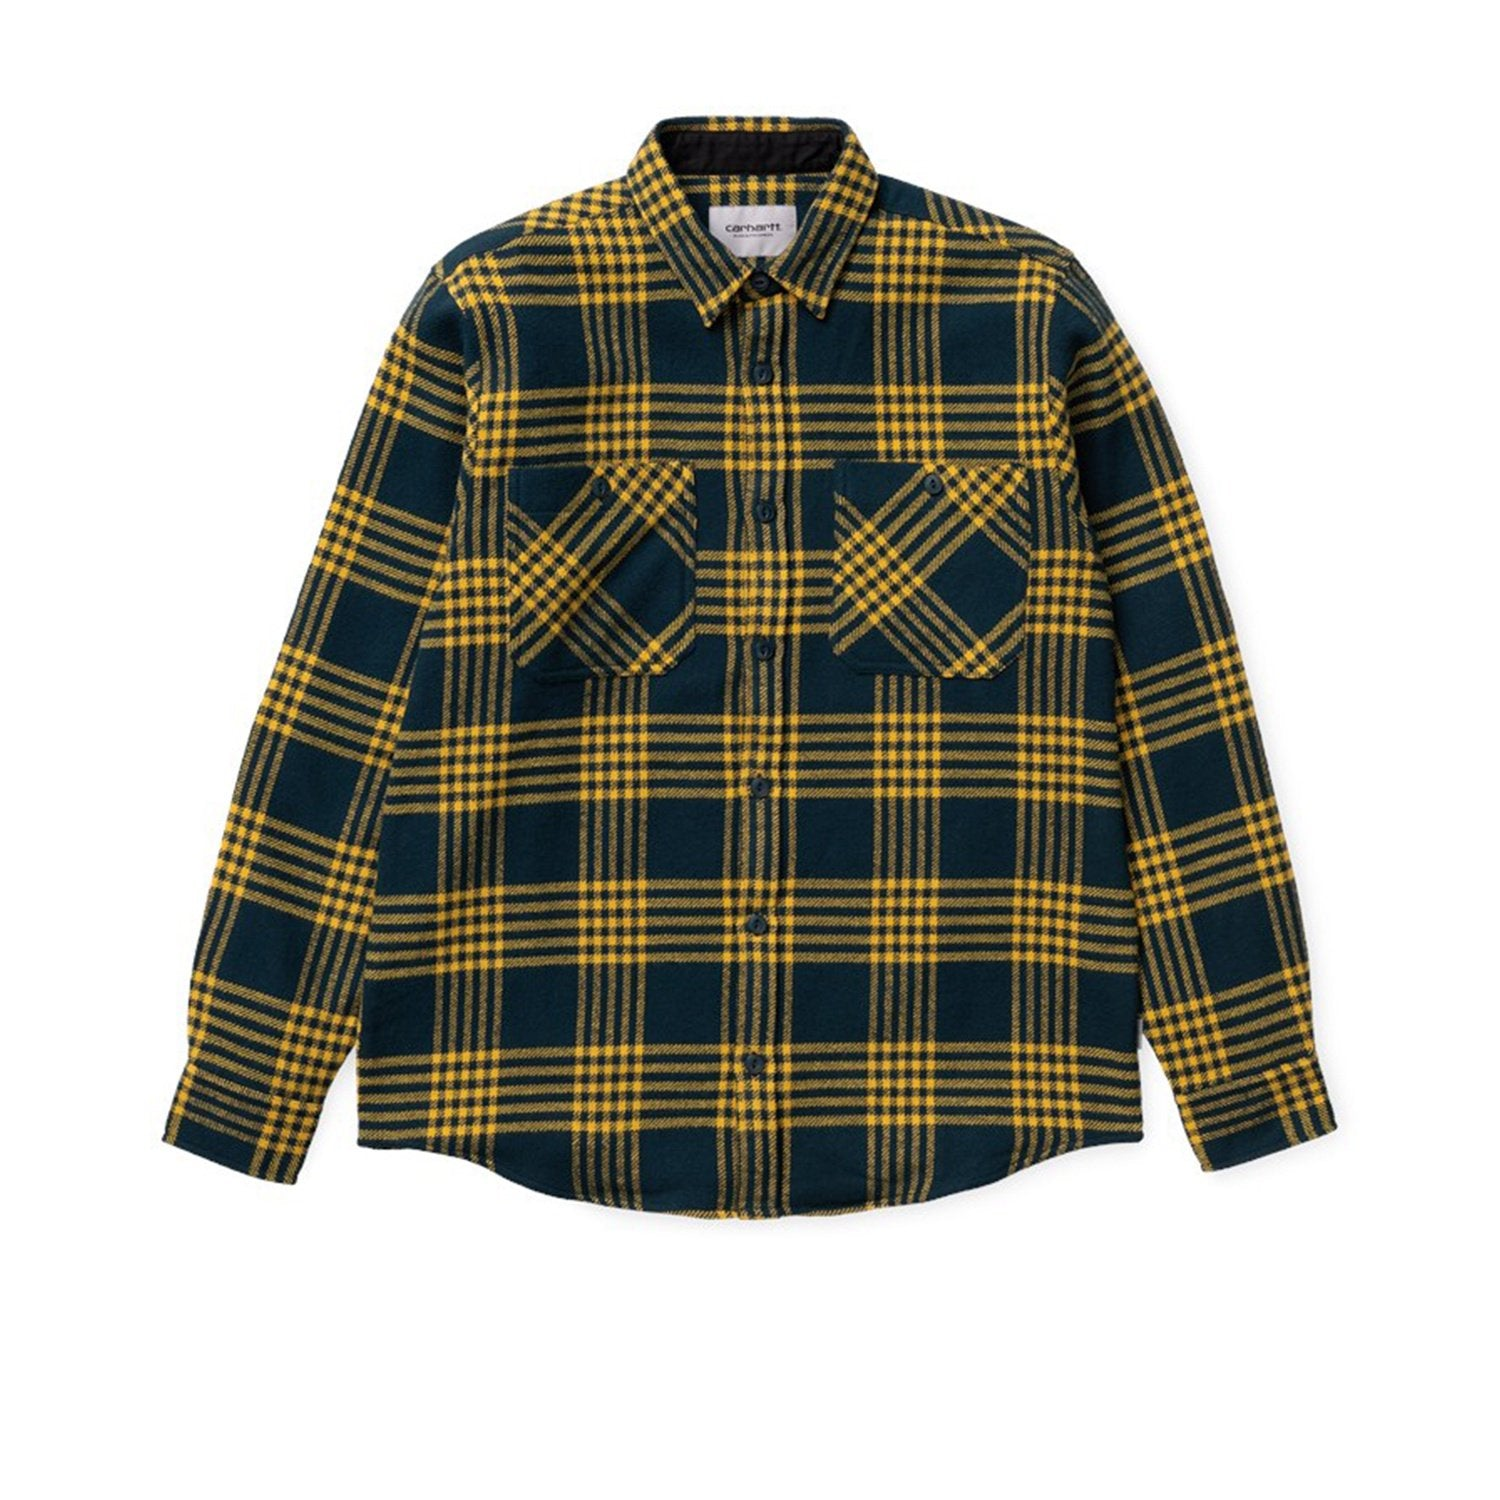 Carhartt WIP SS20 L/S Lambie Shirt- Duck Blue/Colza